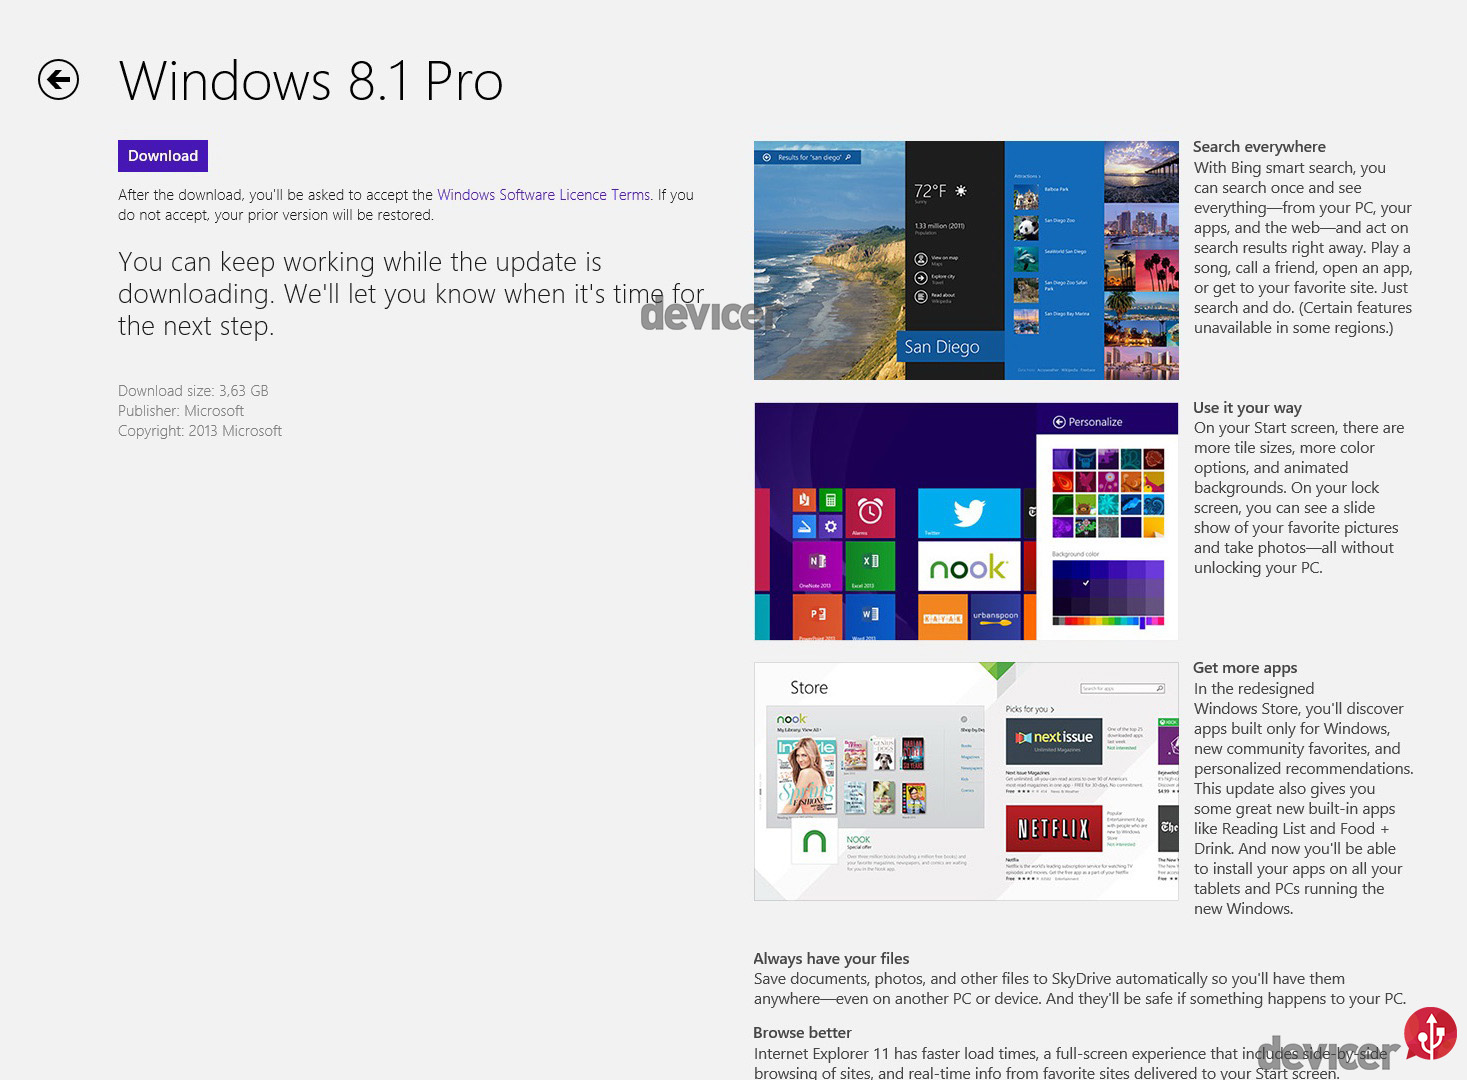 Upgrade Windows 8.1 - 2